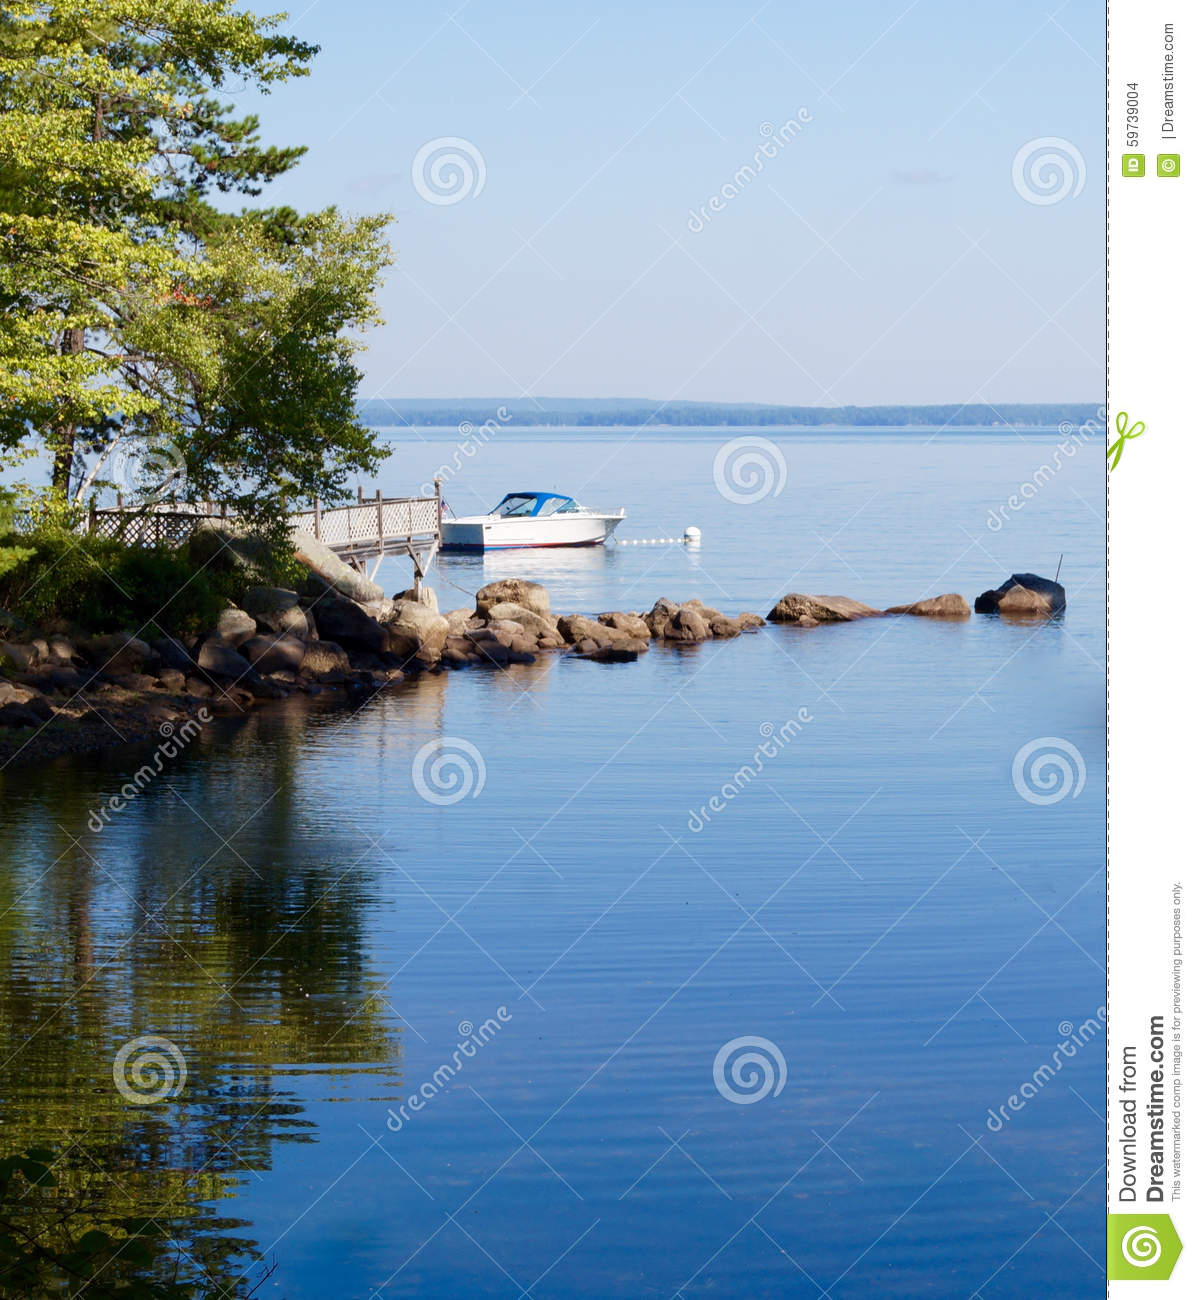 Tranquility, Serenity, Solitude And A Rocky Lake Cove Stock Photo.